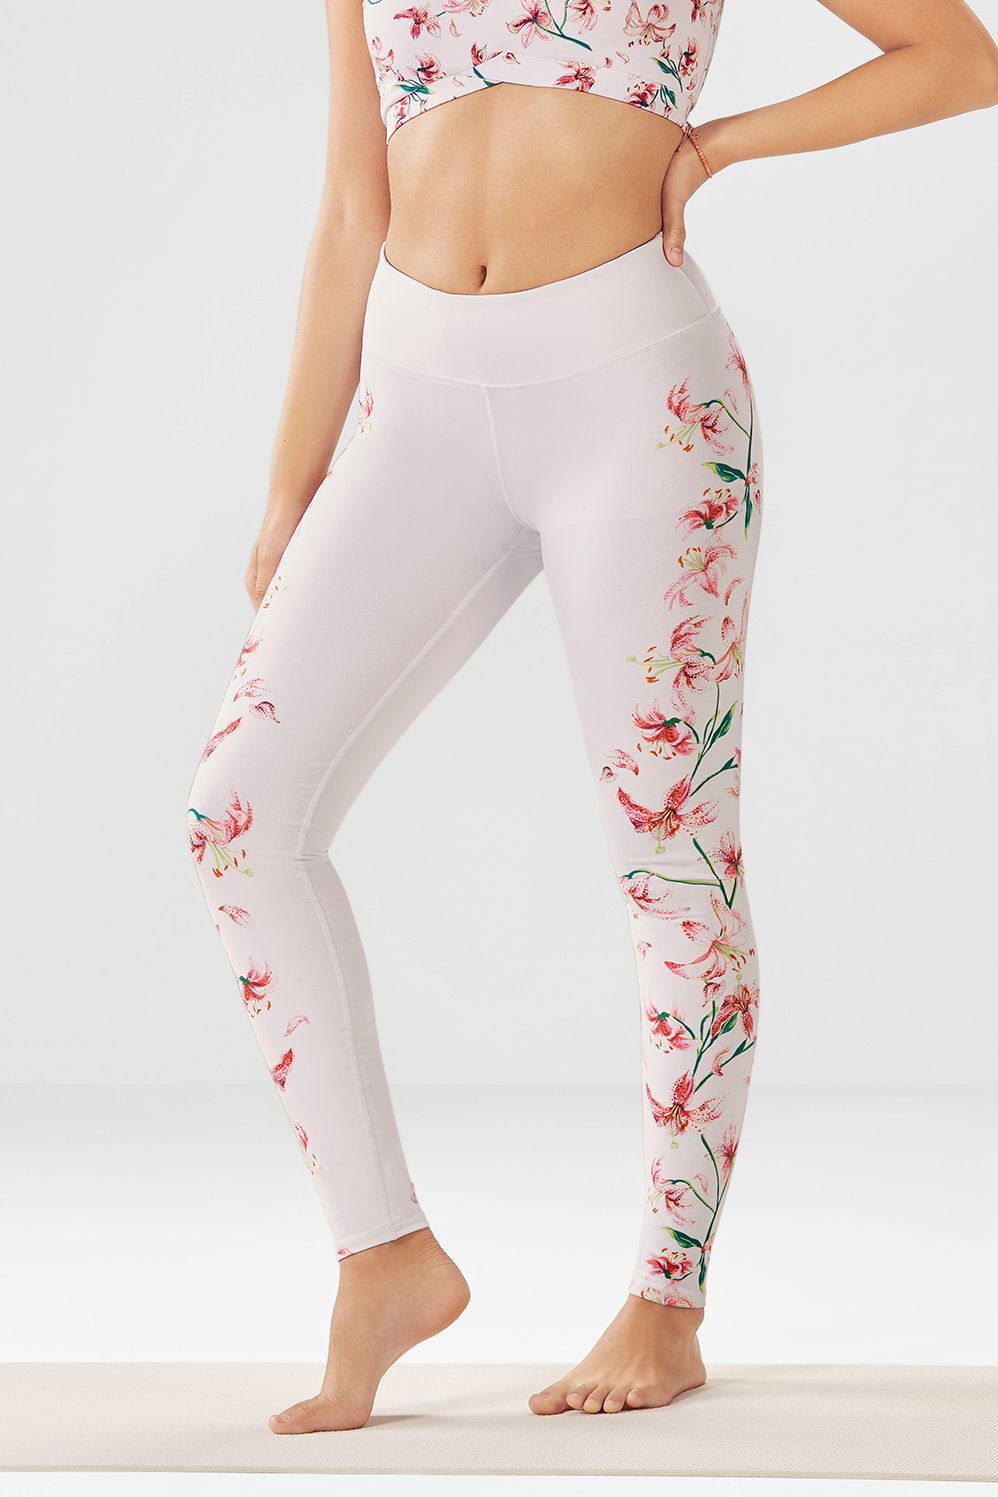 Our bestselling legging is a solid foundation for any